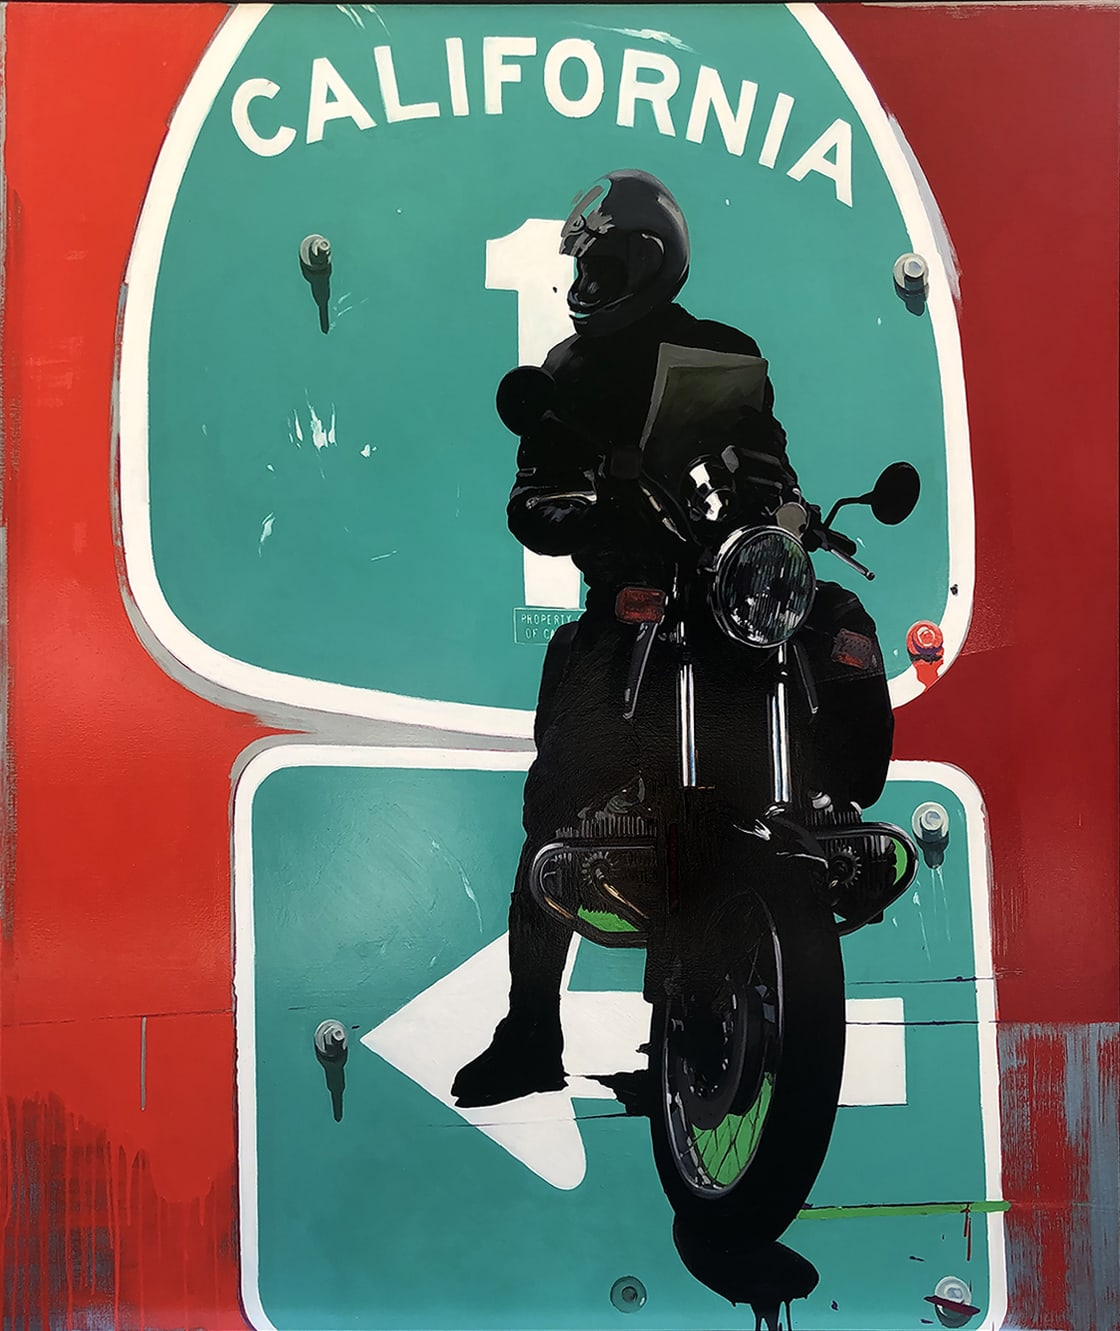 'California, US 1 at Route 66(Red Rider Looking North)' - James Lahey at Kostuik Gallery